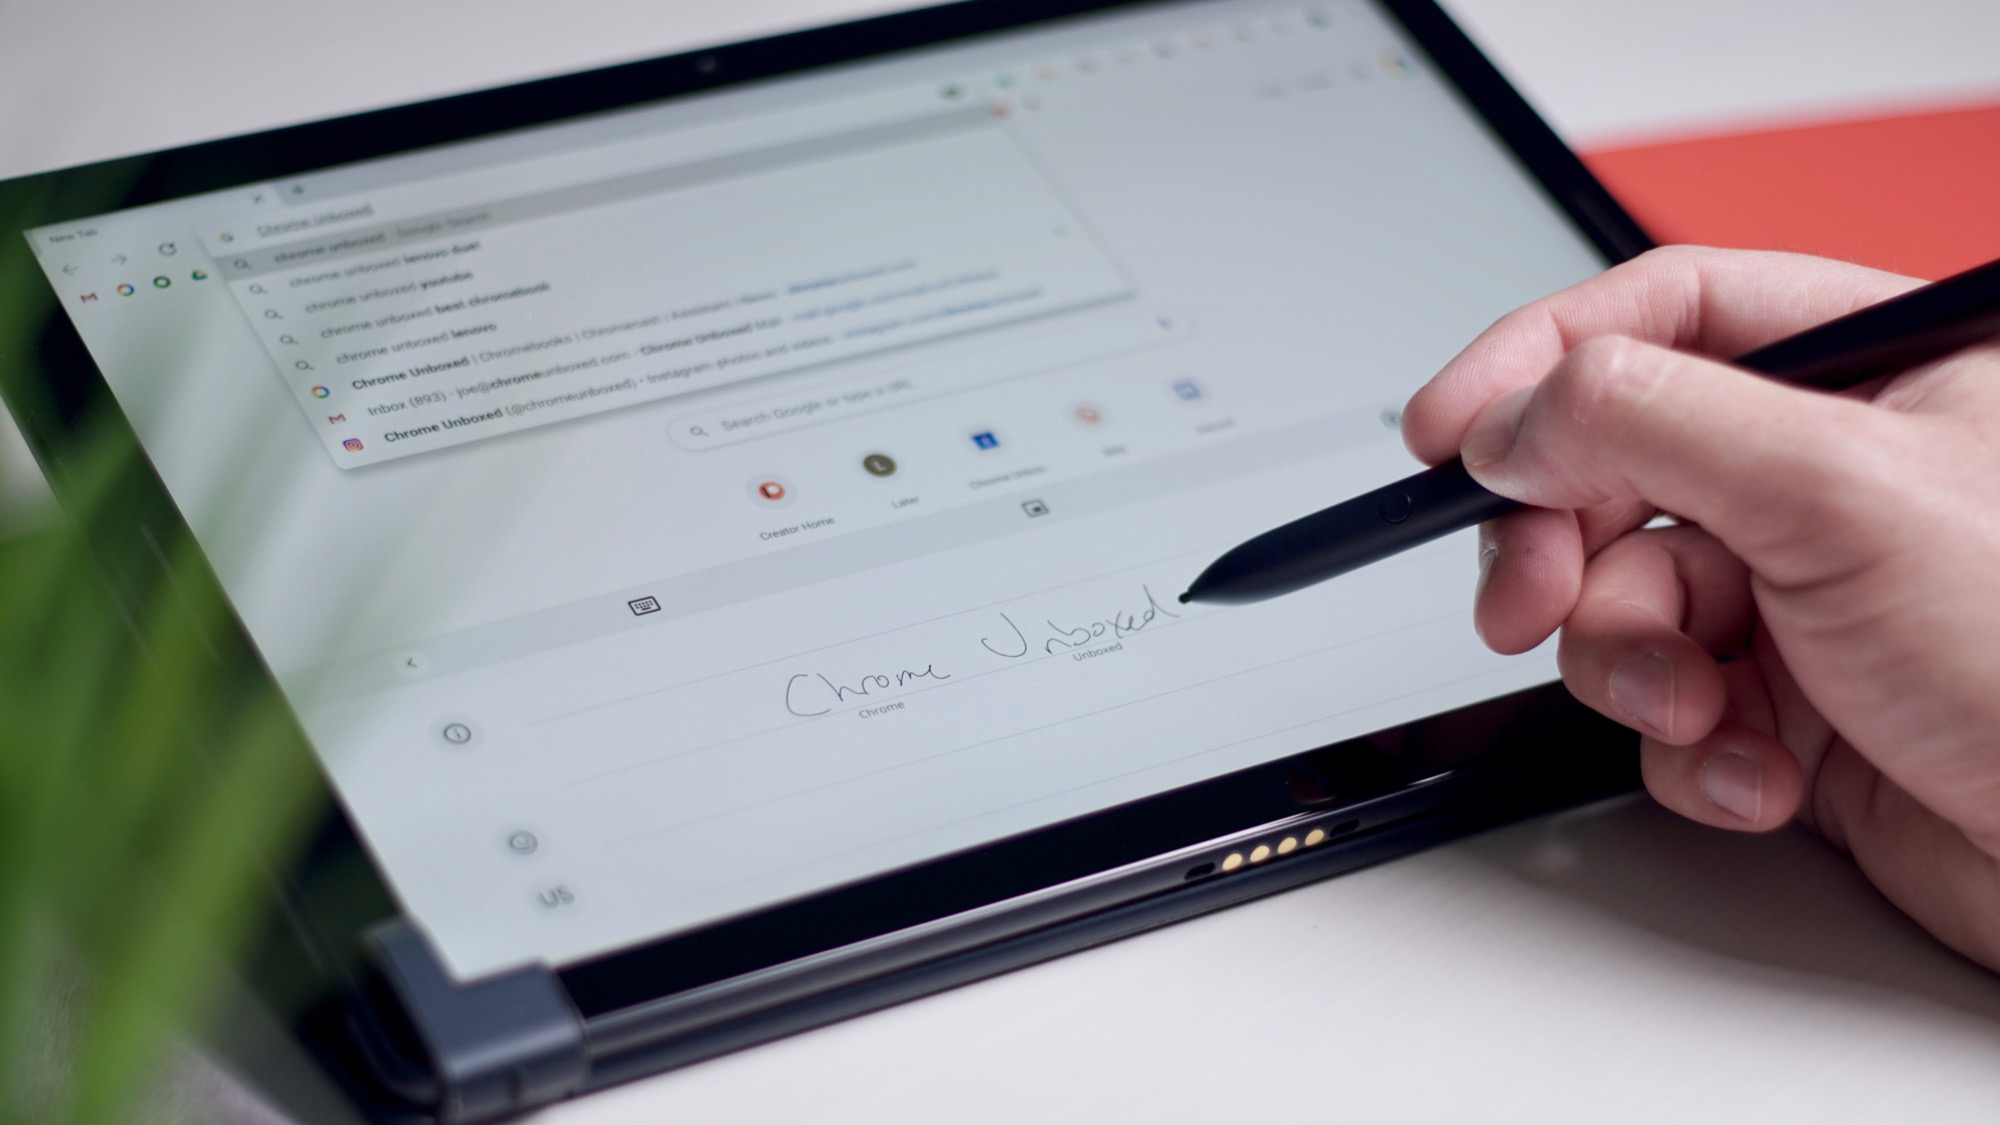 This new Chrome OS 85 handwriting-to-text feature is shockingly good [VIDEO]